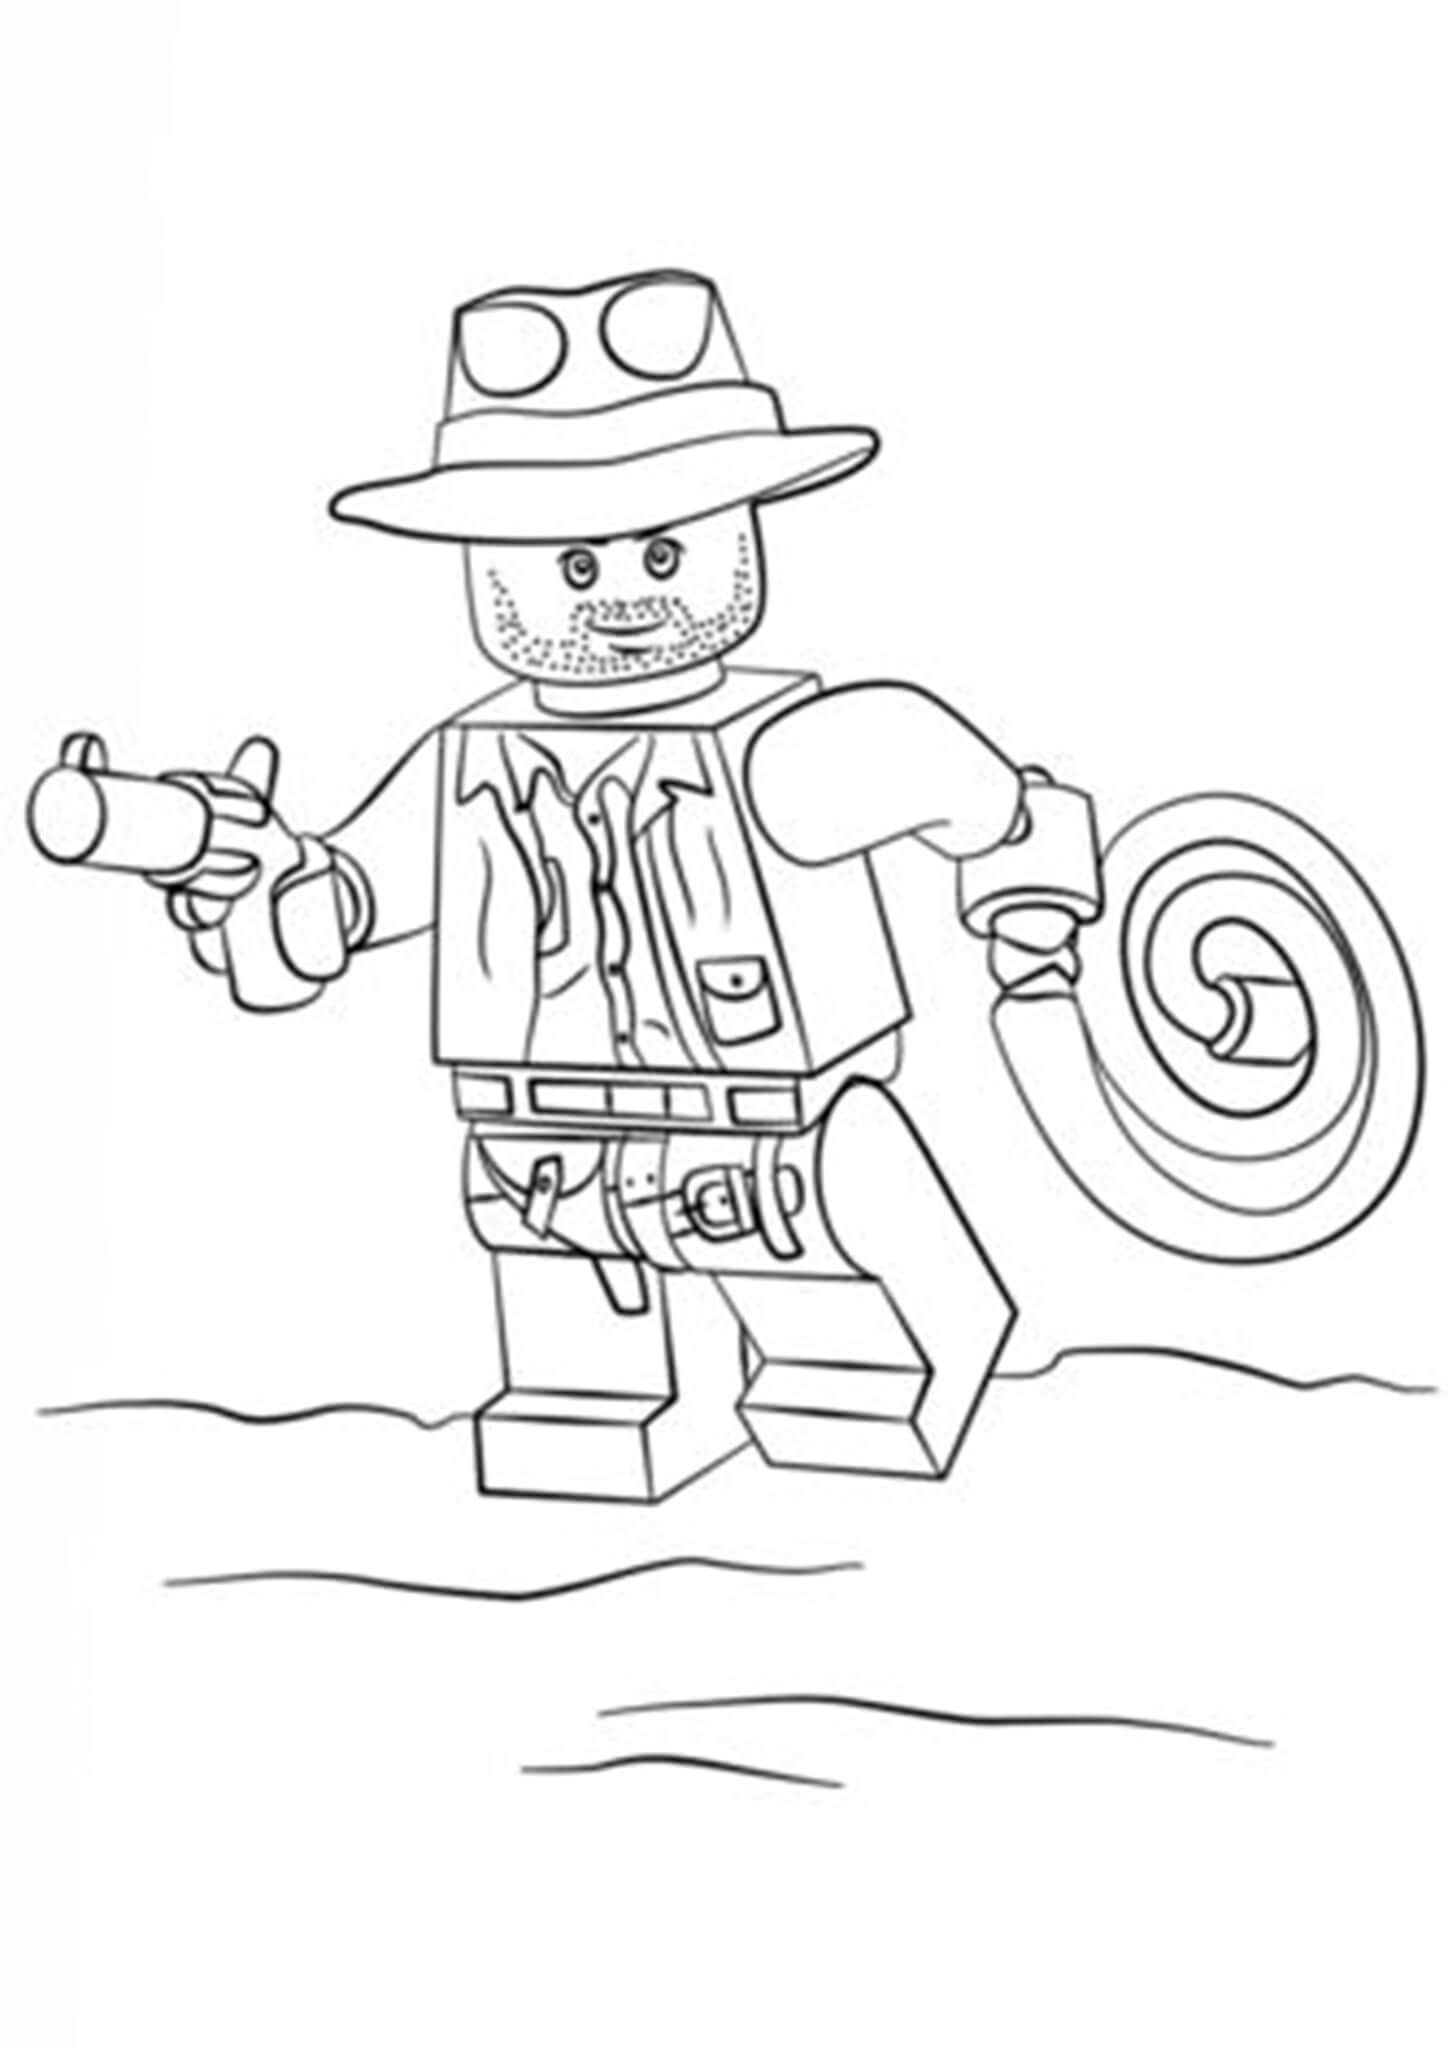 Free Easy To Print Lego Coloring Pages In 2020 Lego Coloring Pages Lego Indiana Jones Lego Coloring